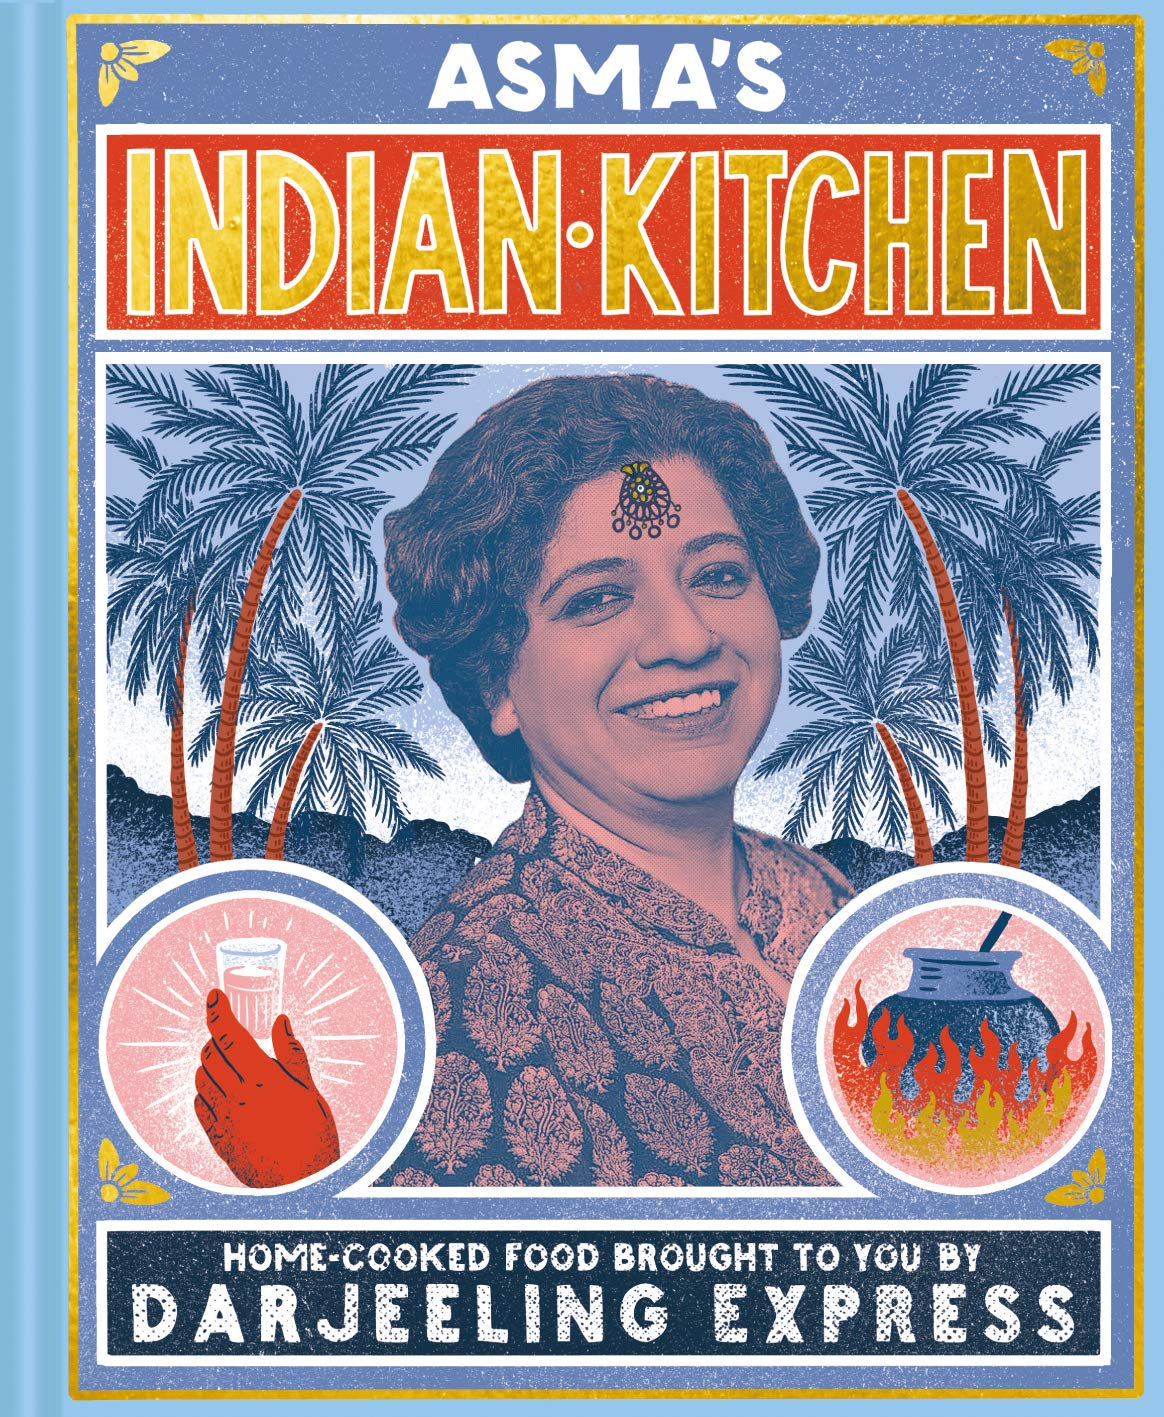 Asma's Indian Kitchen: Home-cooked food brought to you by Darjeeling Express 1